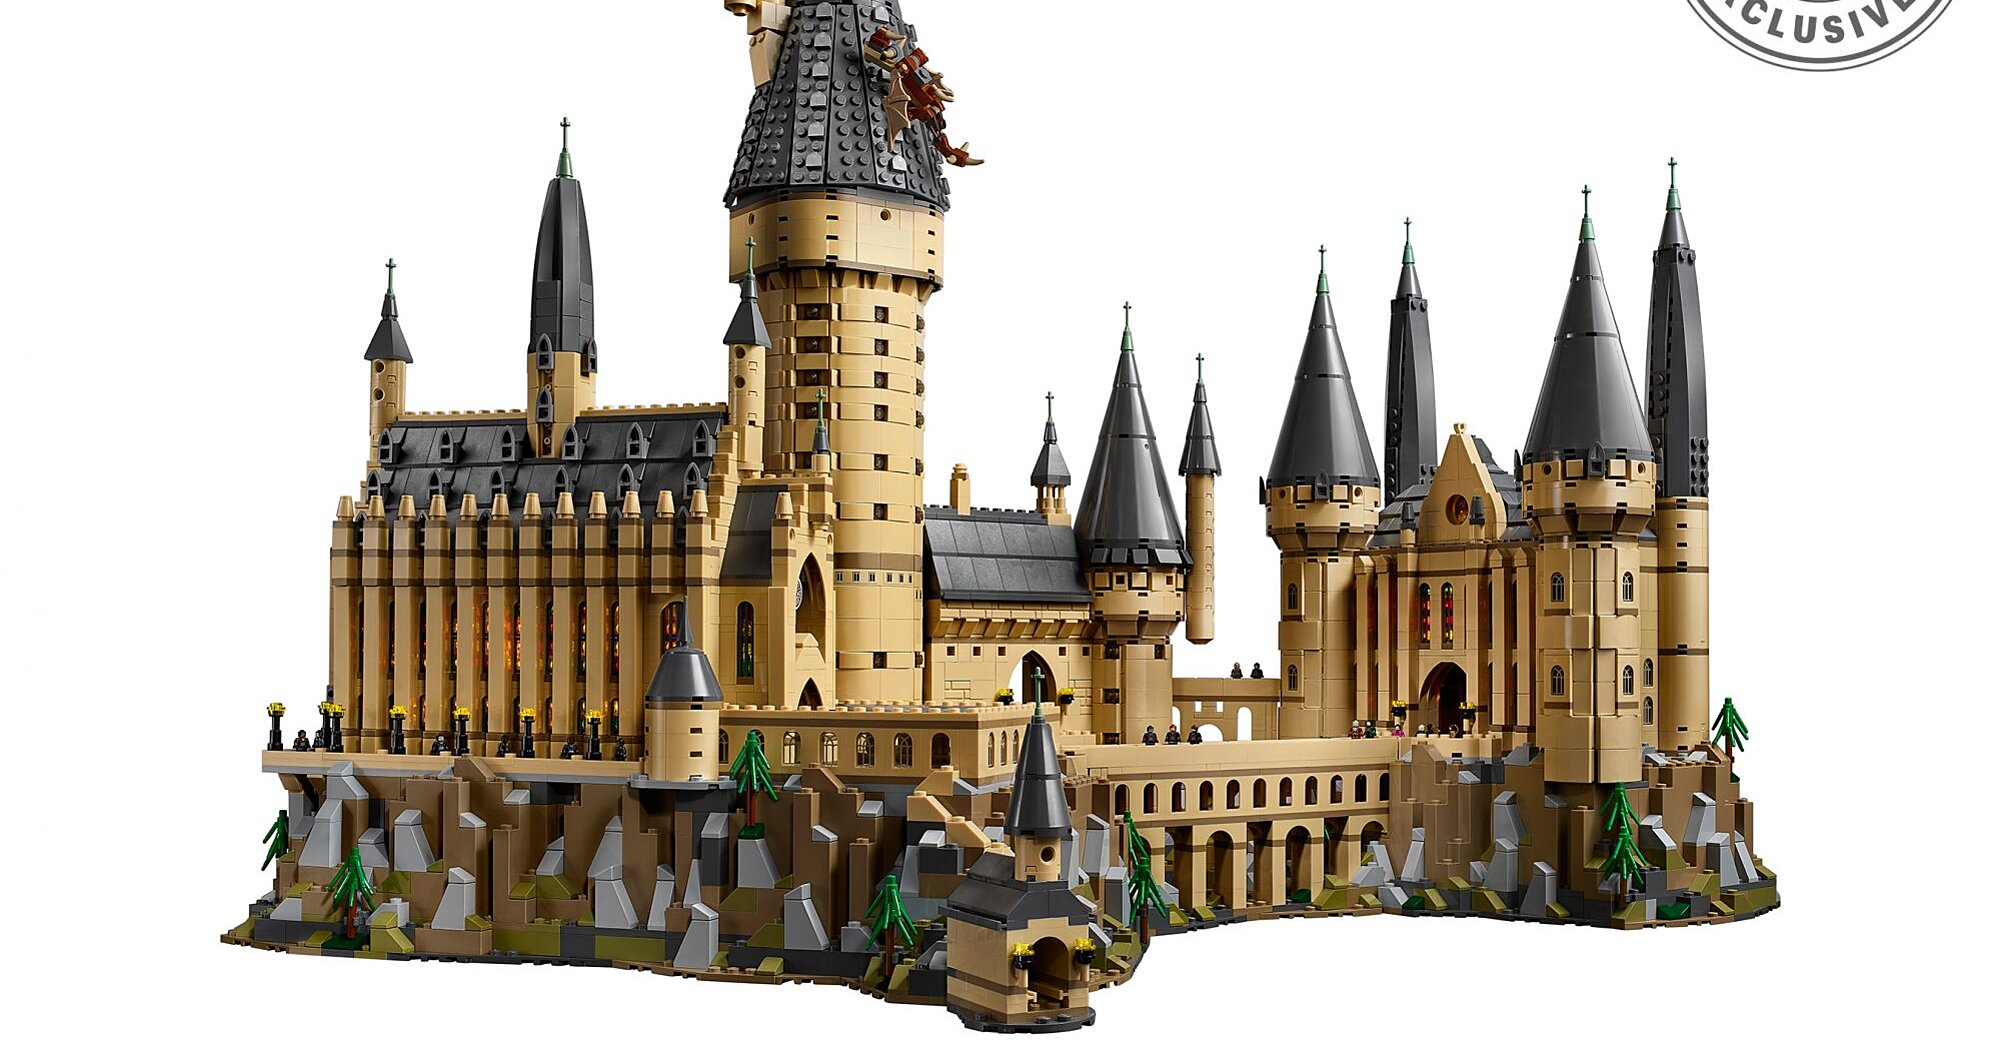 Exclusive: Build your own Hogwarts Castle with LEGO's newest, biggest 'Harry Potter' set